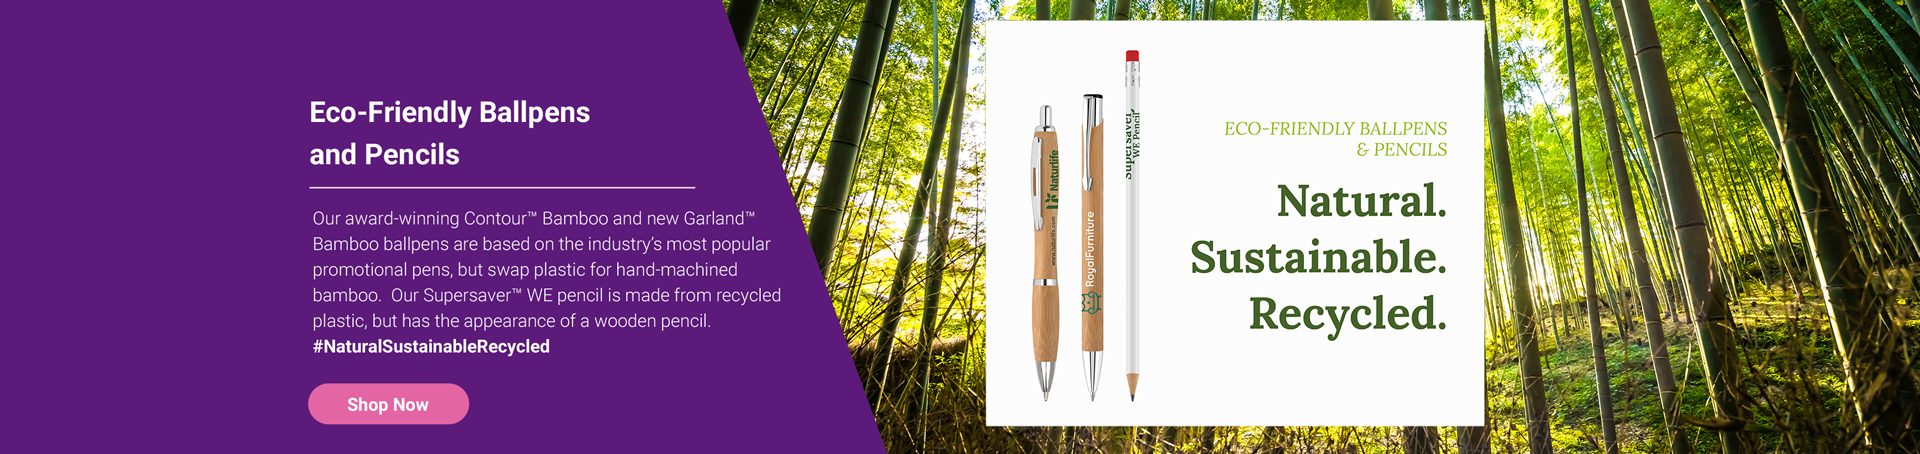 Eco-Friendly Ballpens and Pencils